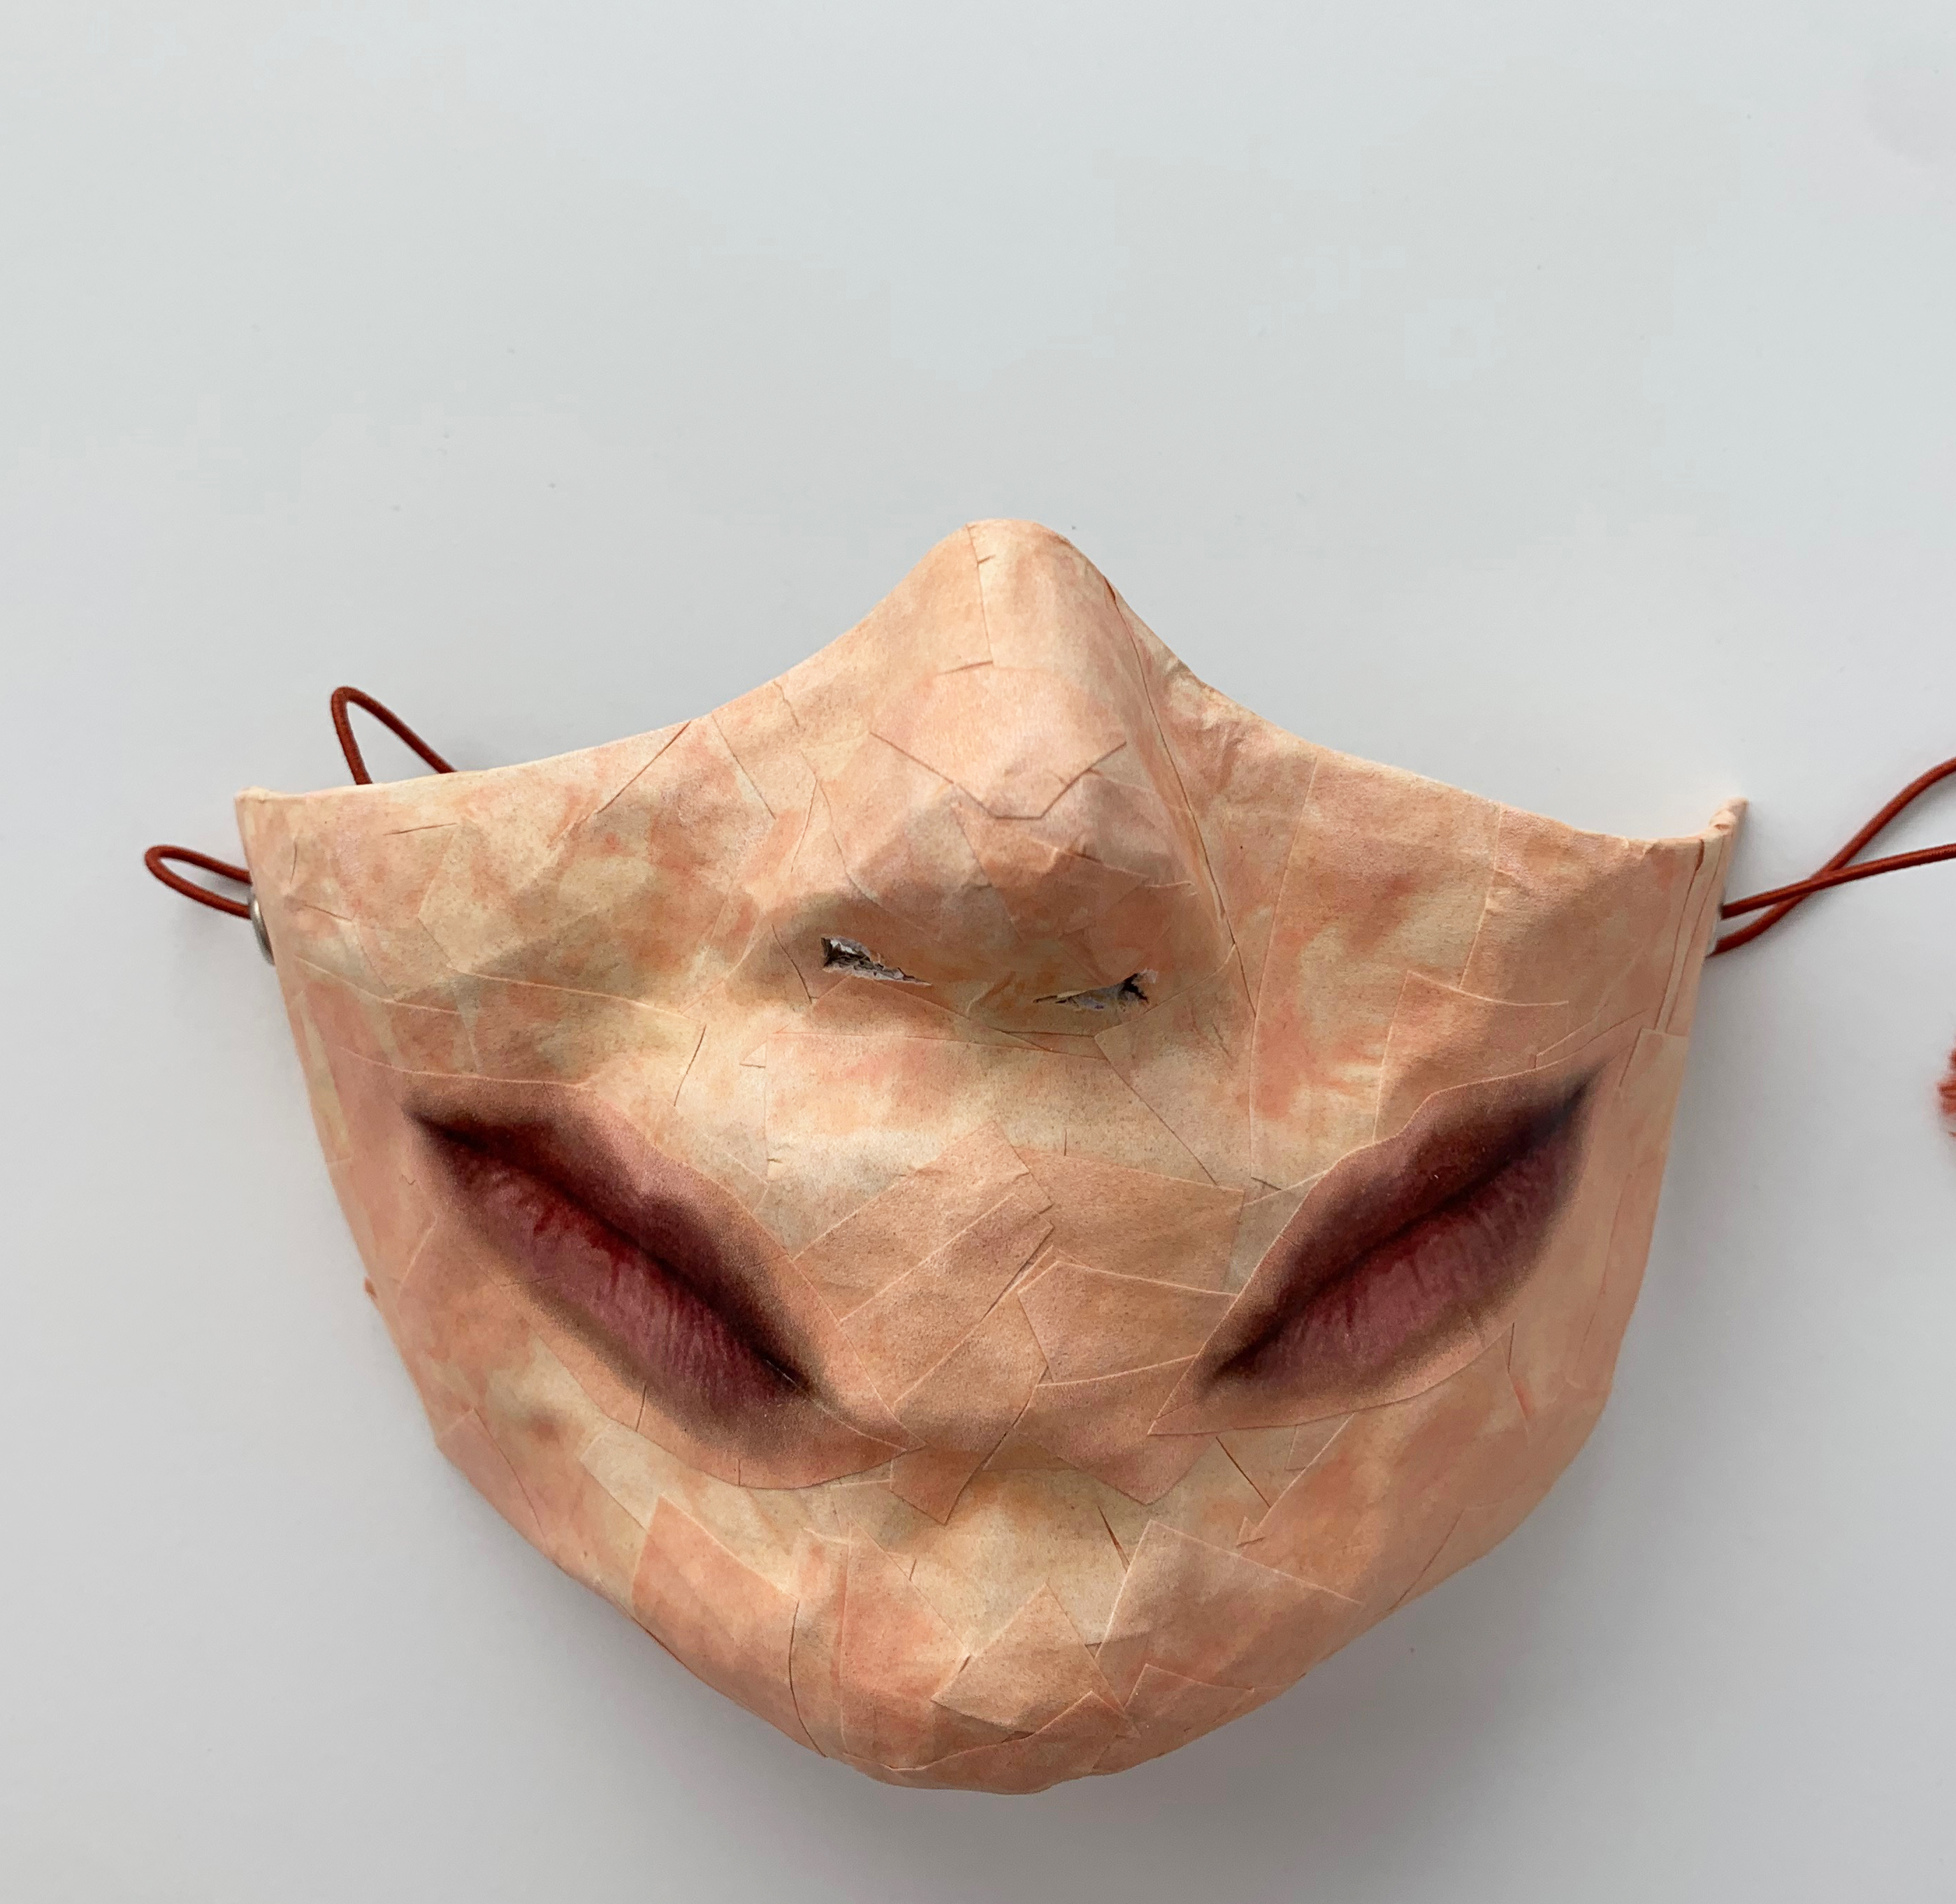 Self-Portrait (Covid Mask #2)